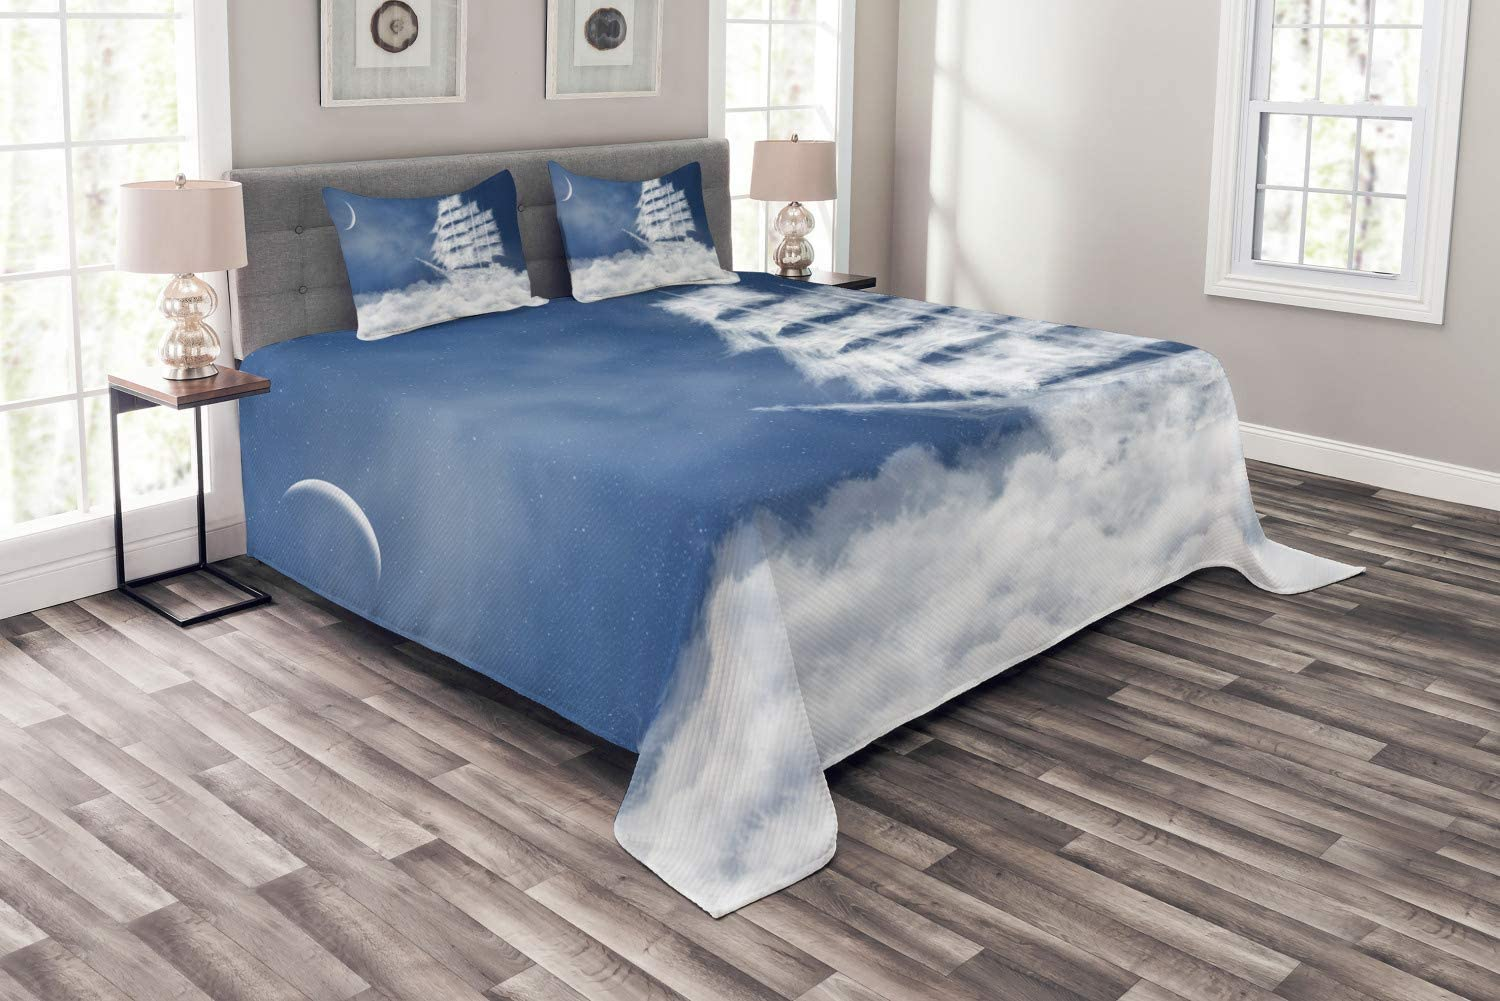 Ambesonne Nautical Bedspread, Yacht in The Ocean Madend Shaped with Fluffy Cloudstmospheric Imaginary Sky, Decorative Quilted 3 Piece Coverlet Set with 2 Pillow Shams, Queen Size, Blue White